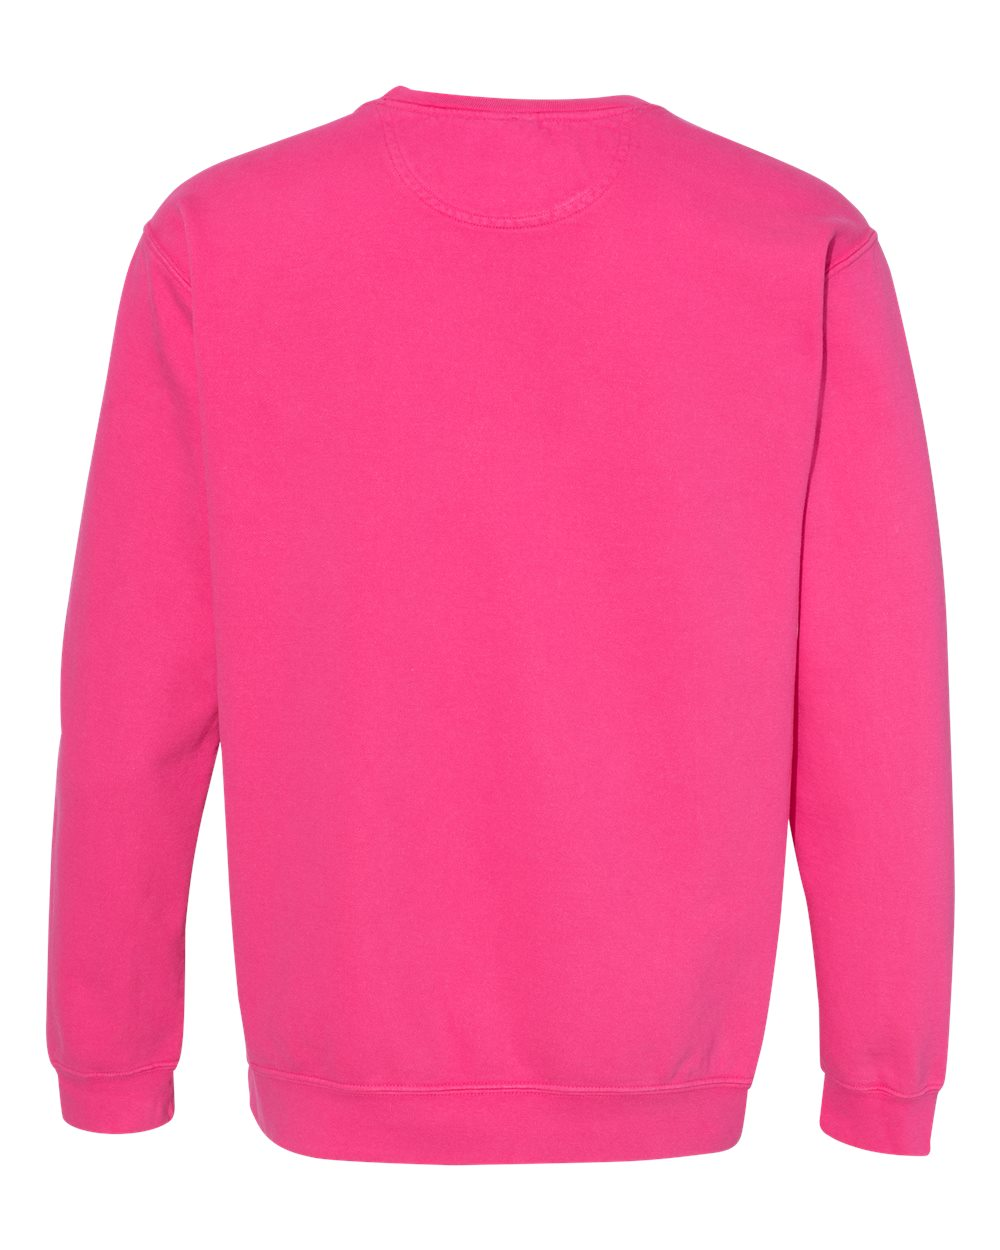 Comfort-Colors-Mens-Garment-Dyed-Ringspun-Crewneck-Sweatshirt-1566-up-to-3XL miniature 37